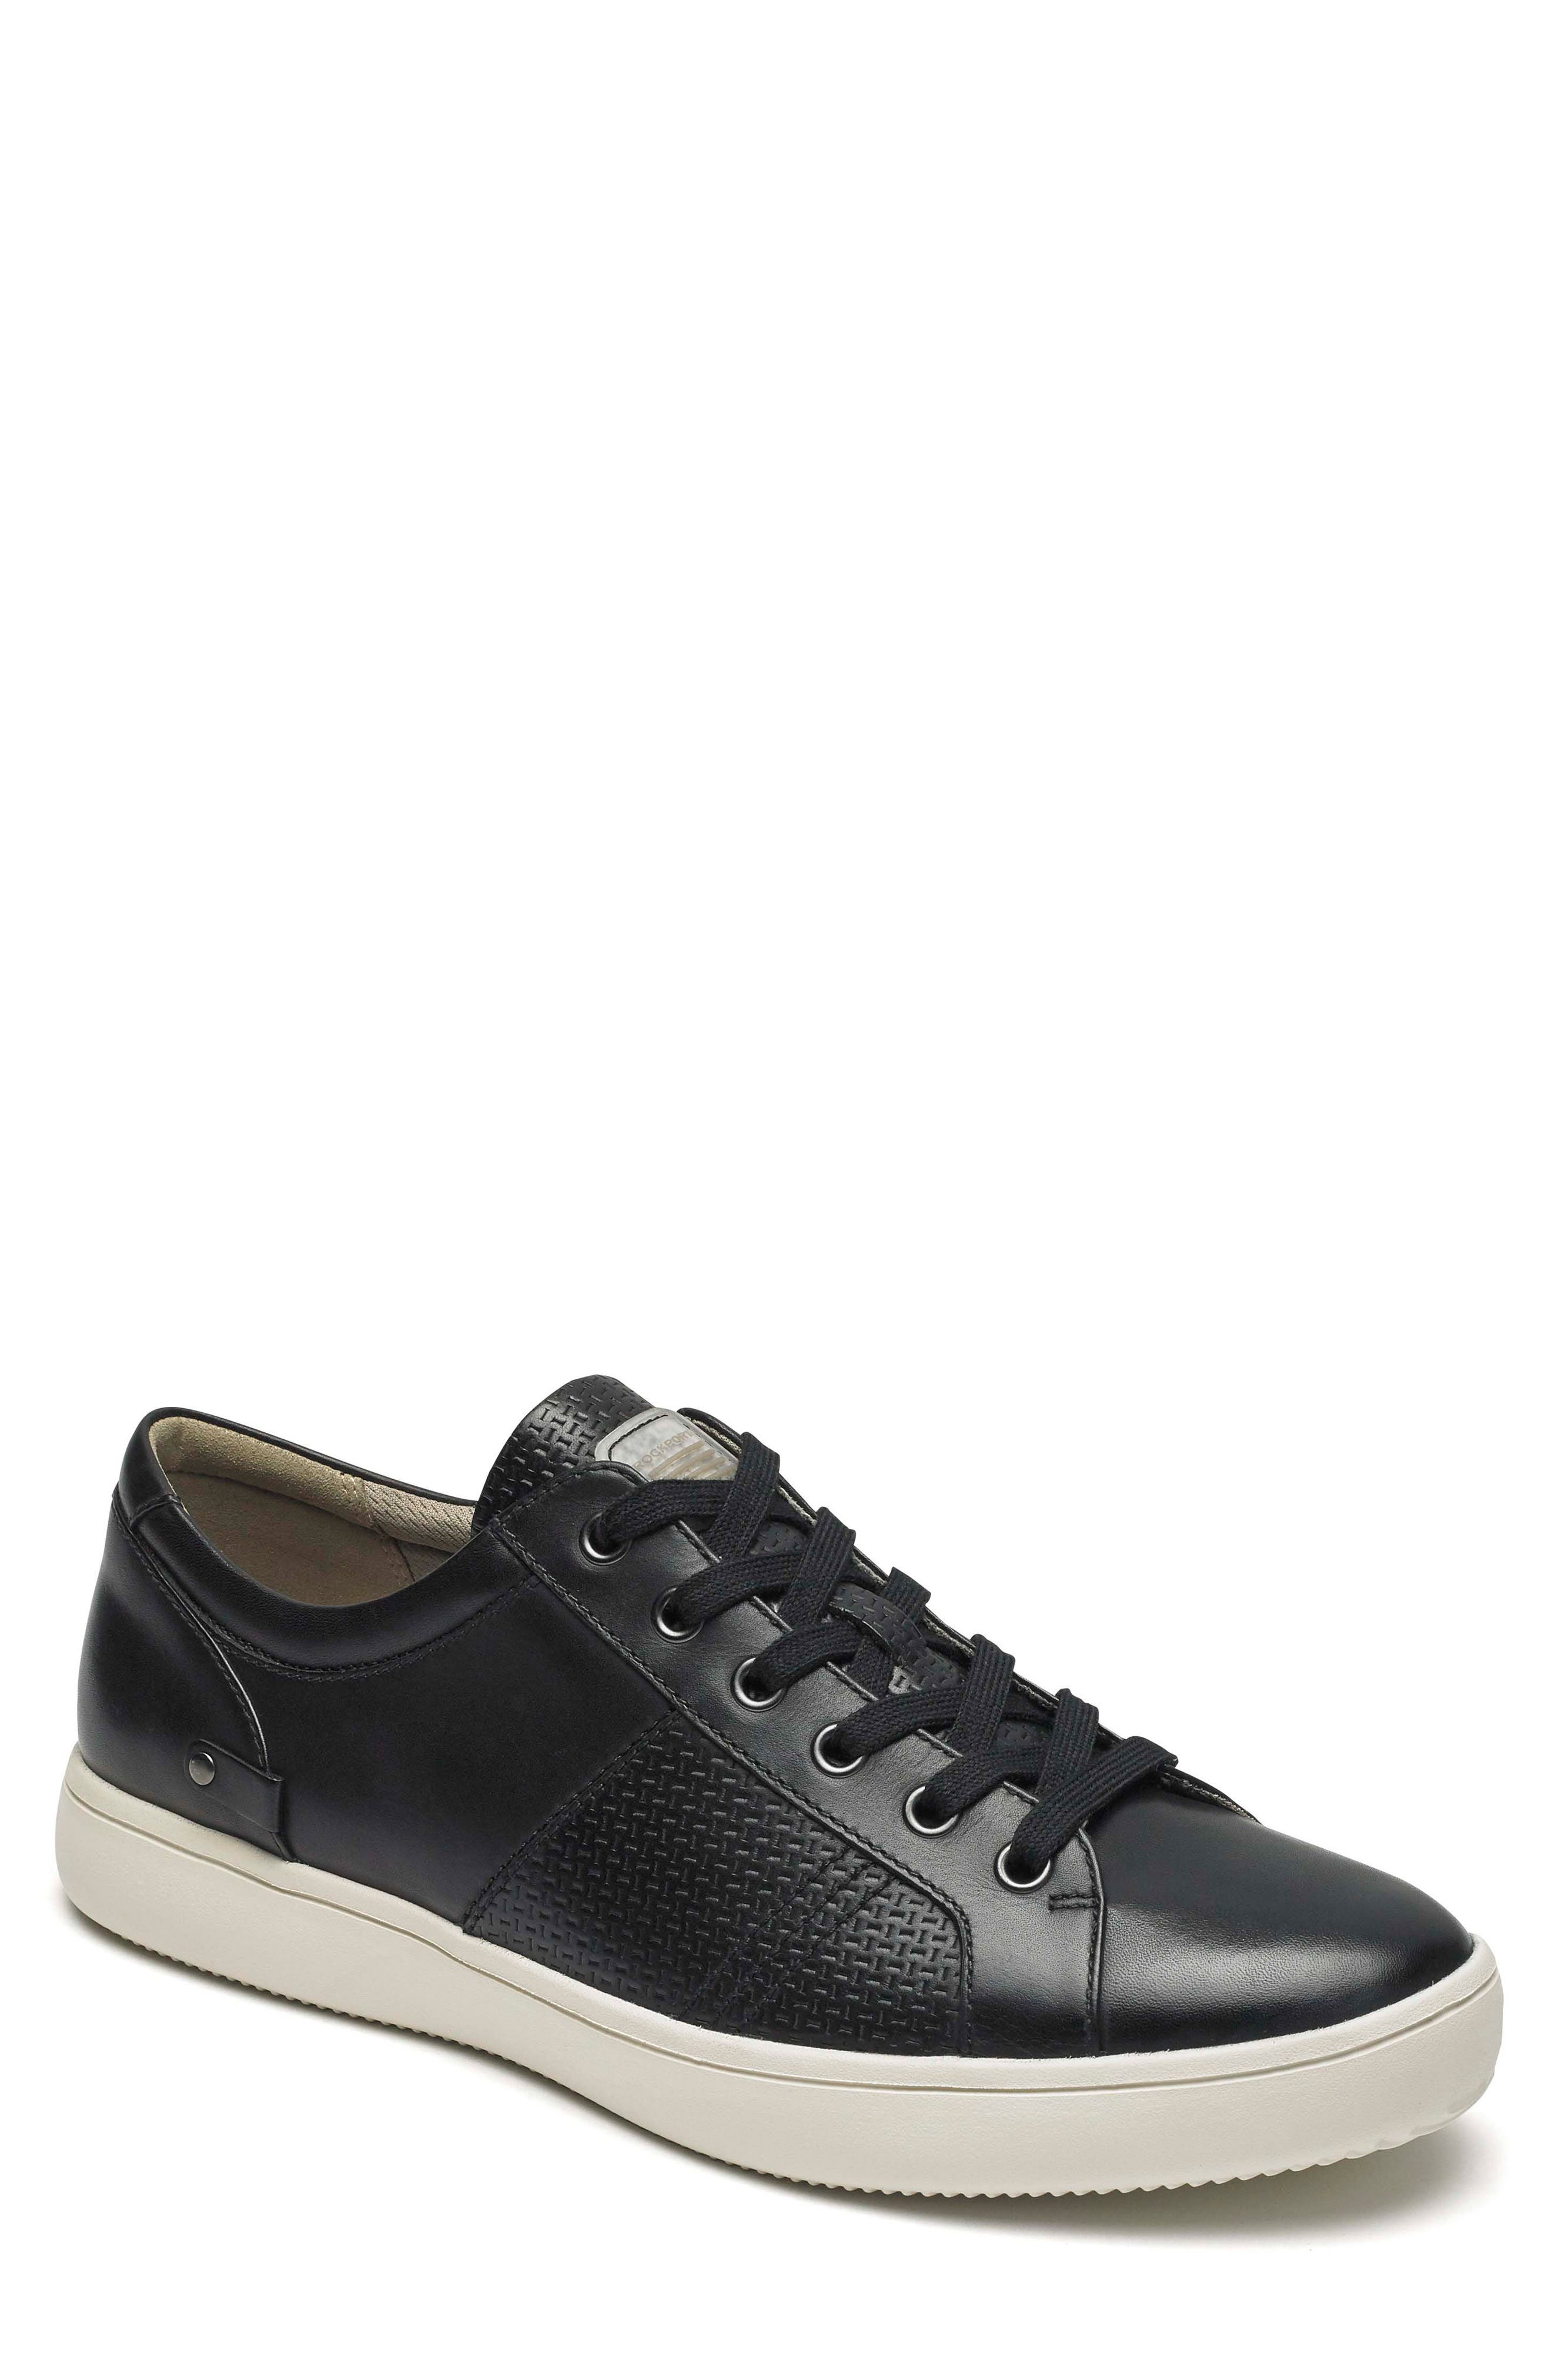 Rockport City Lites Collection Lace-Up